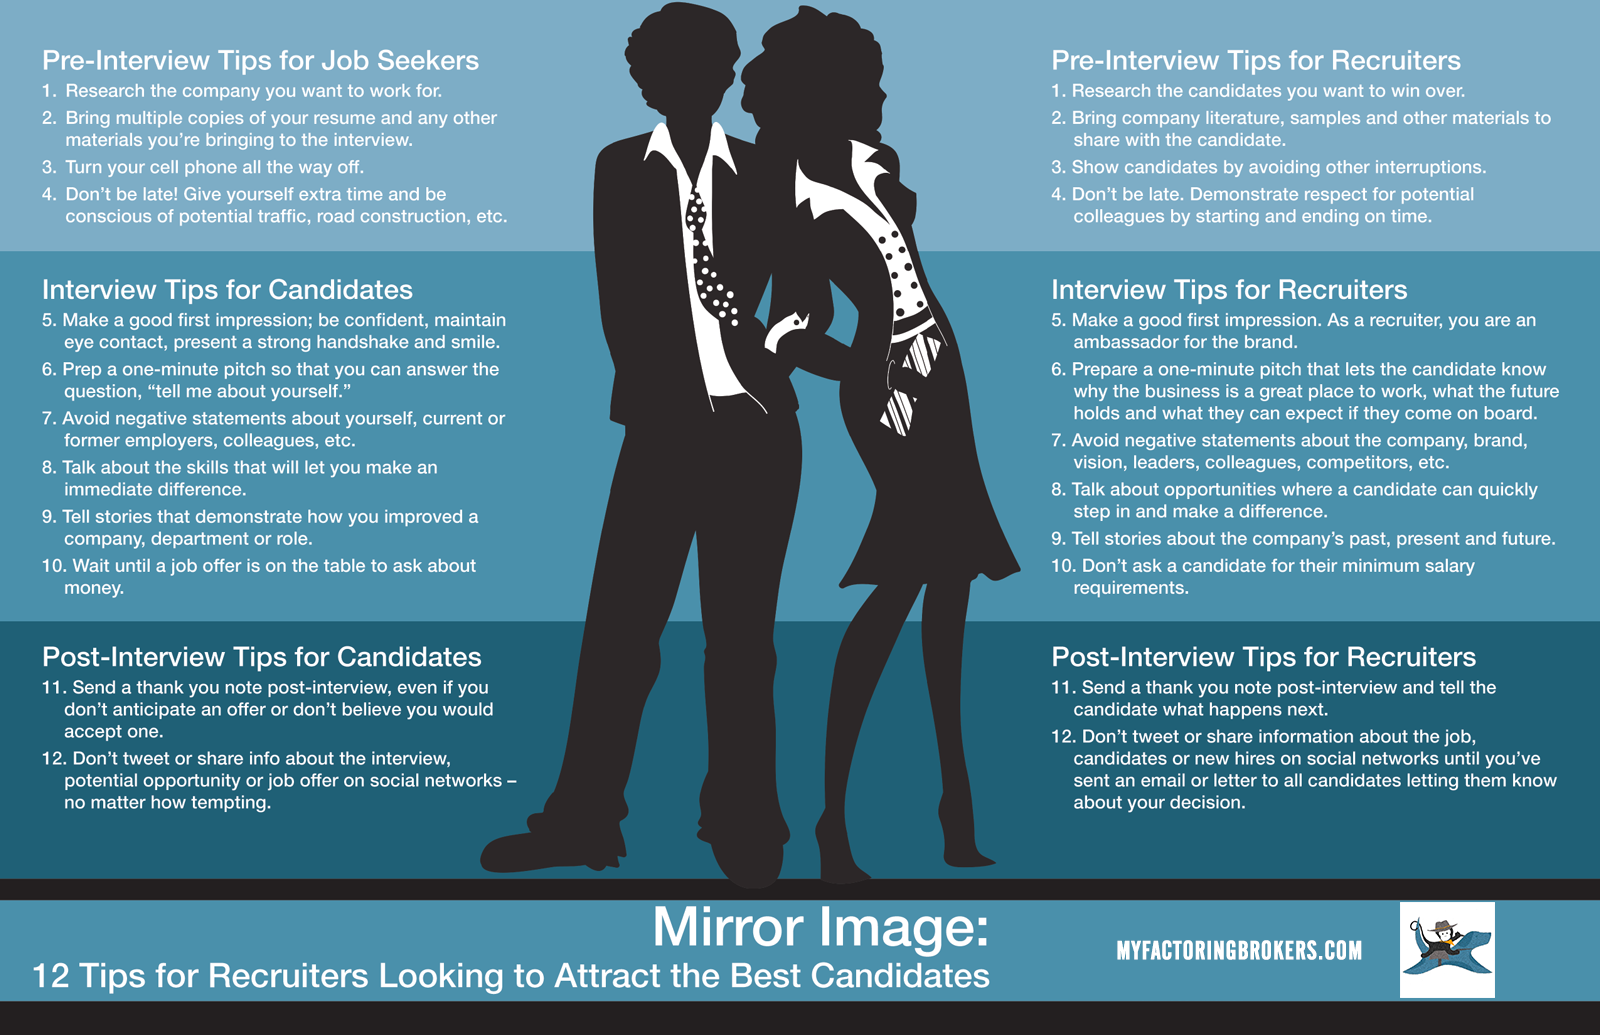 Infographic - 12 Tips for Recruiters Looking to Attract the Best Candidates